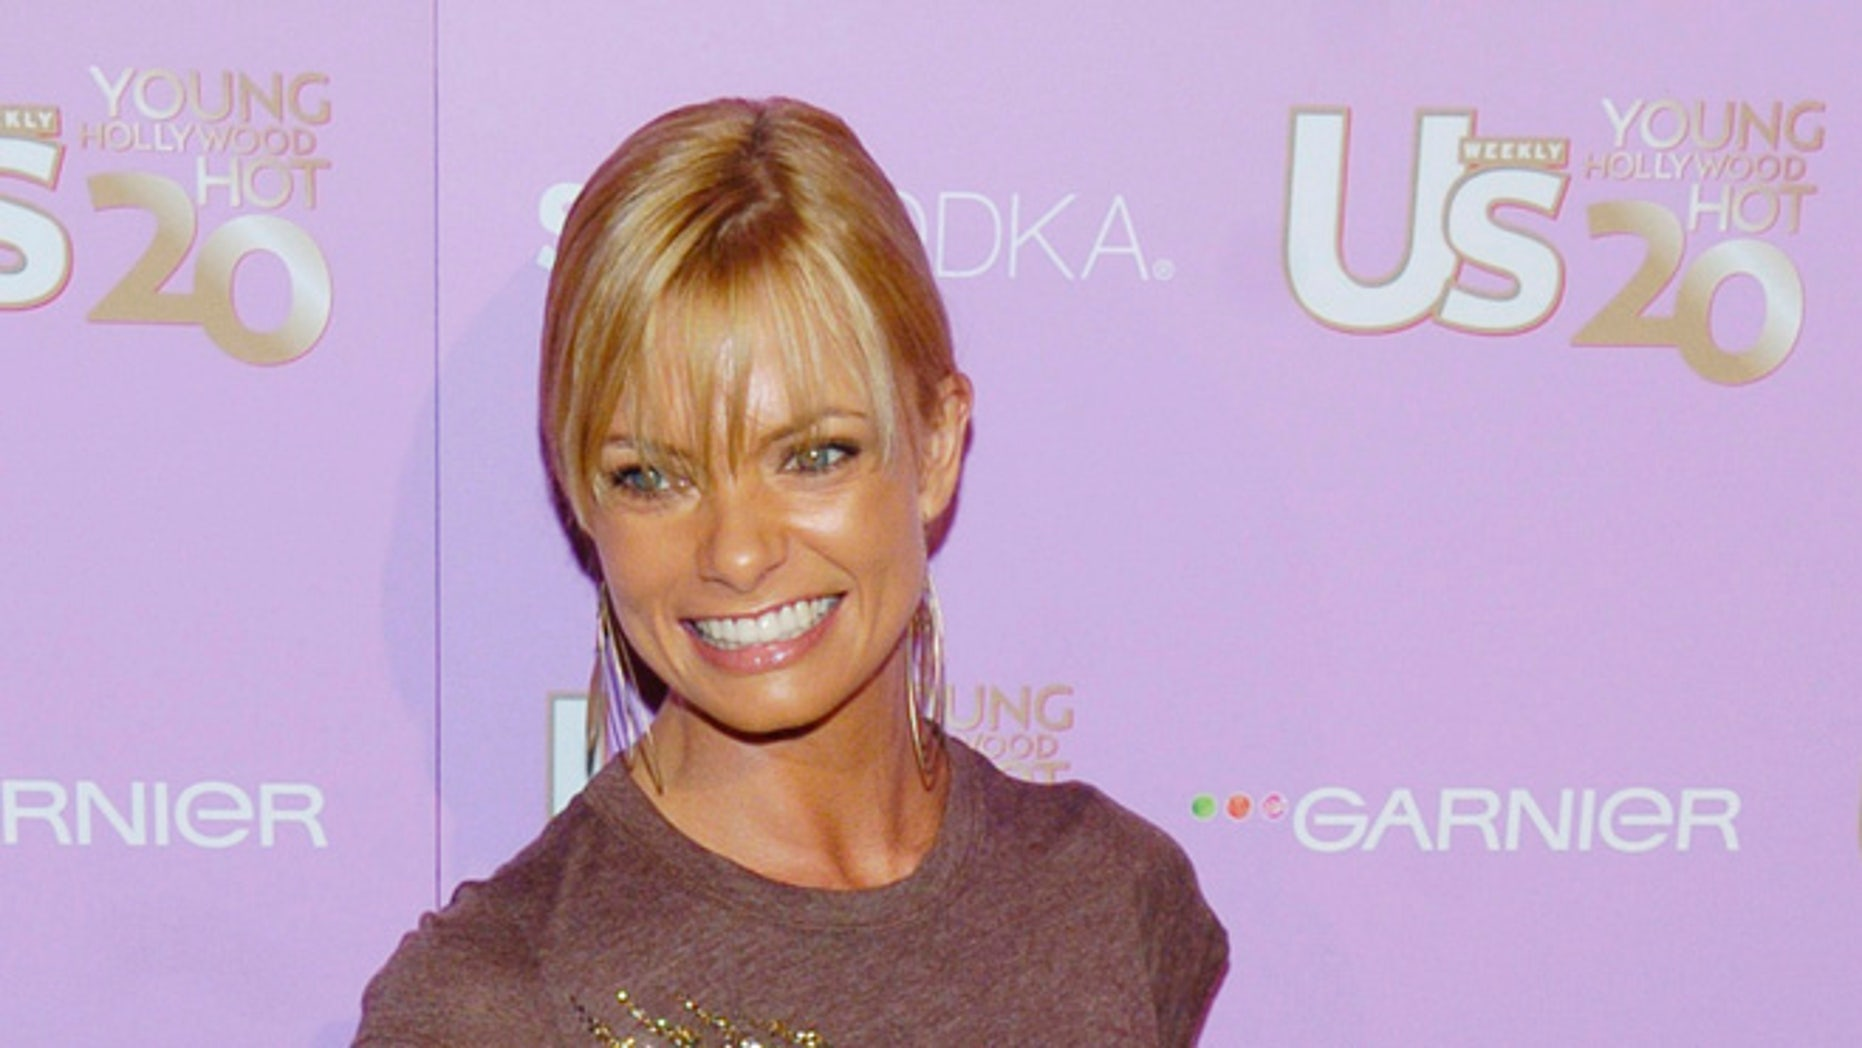 Jaime Pressly's home was burglarized.